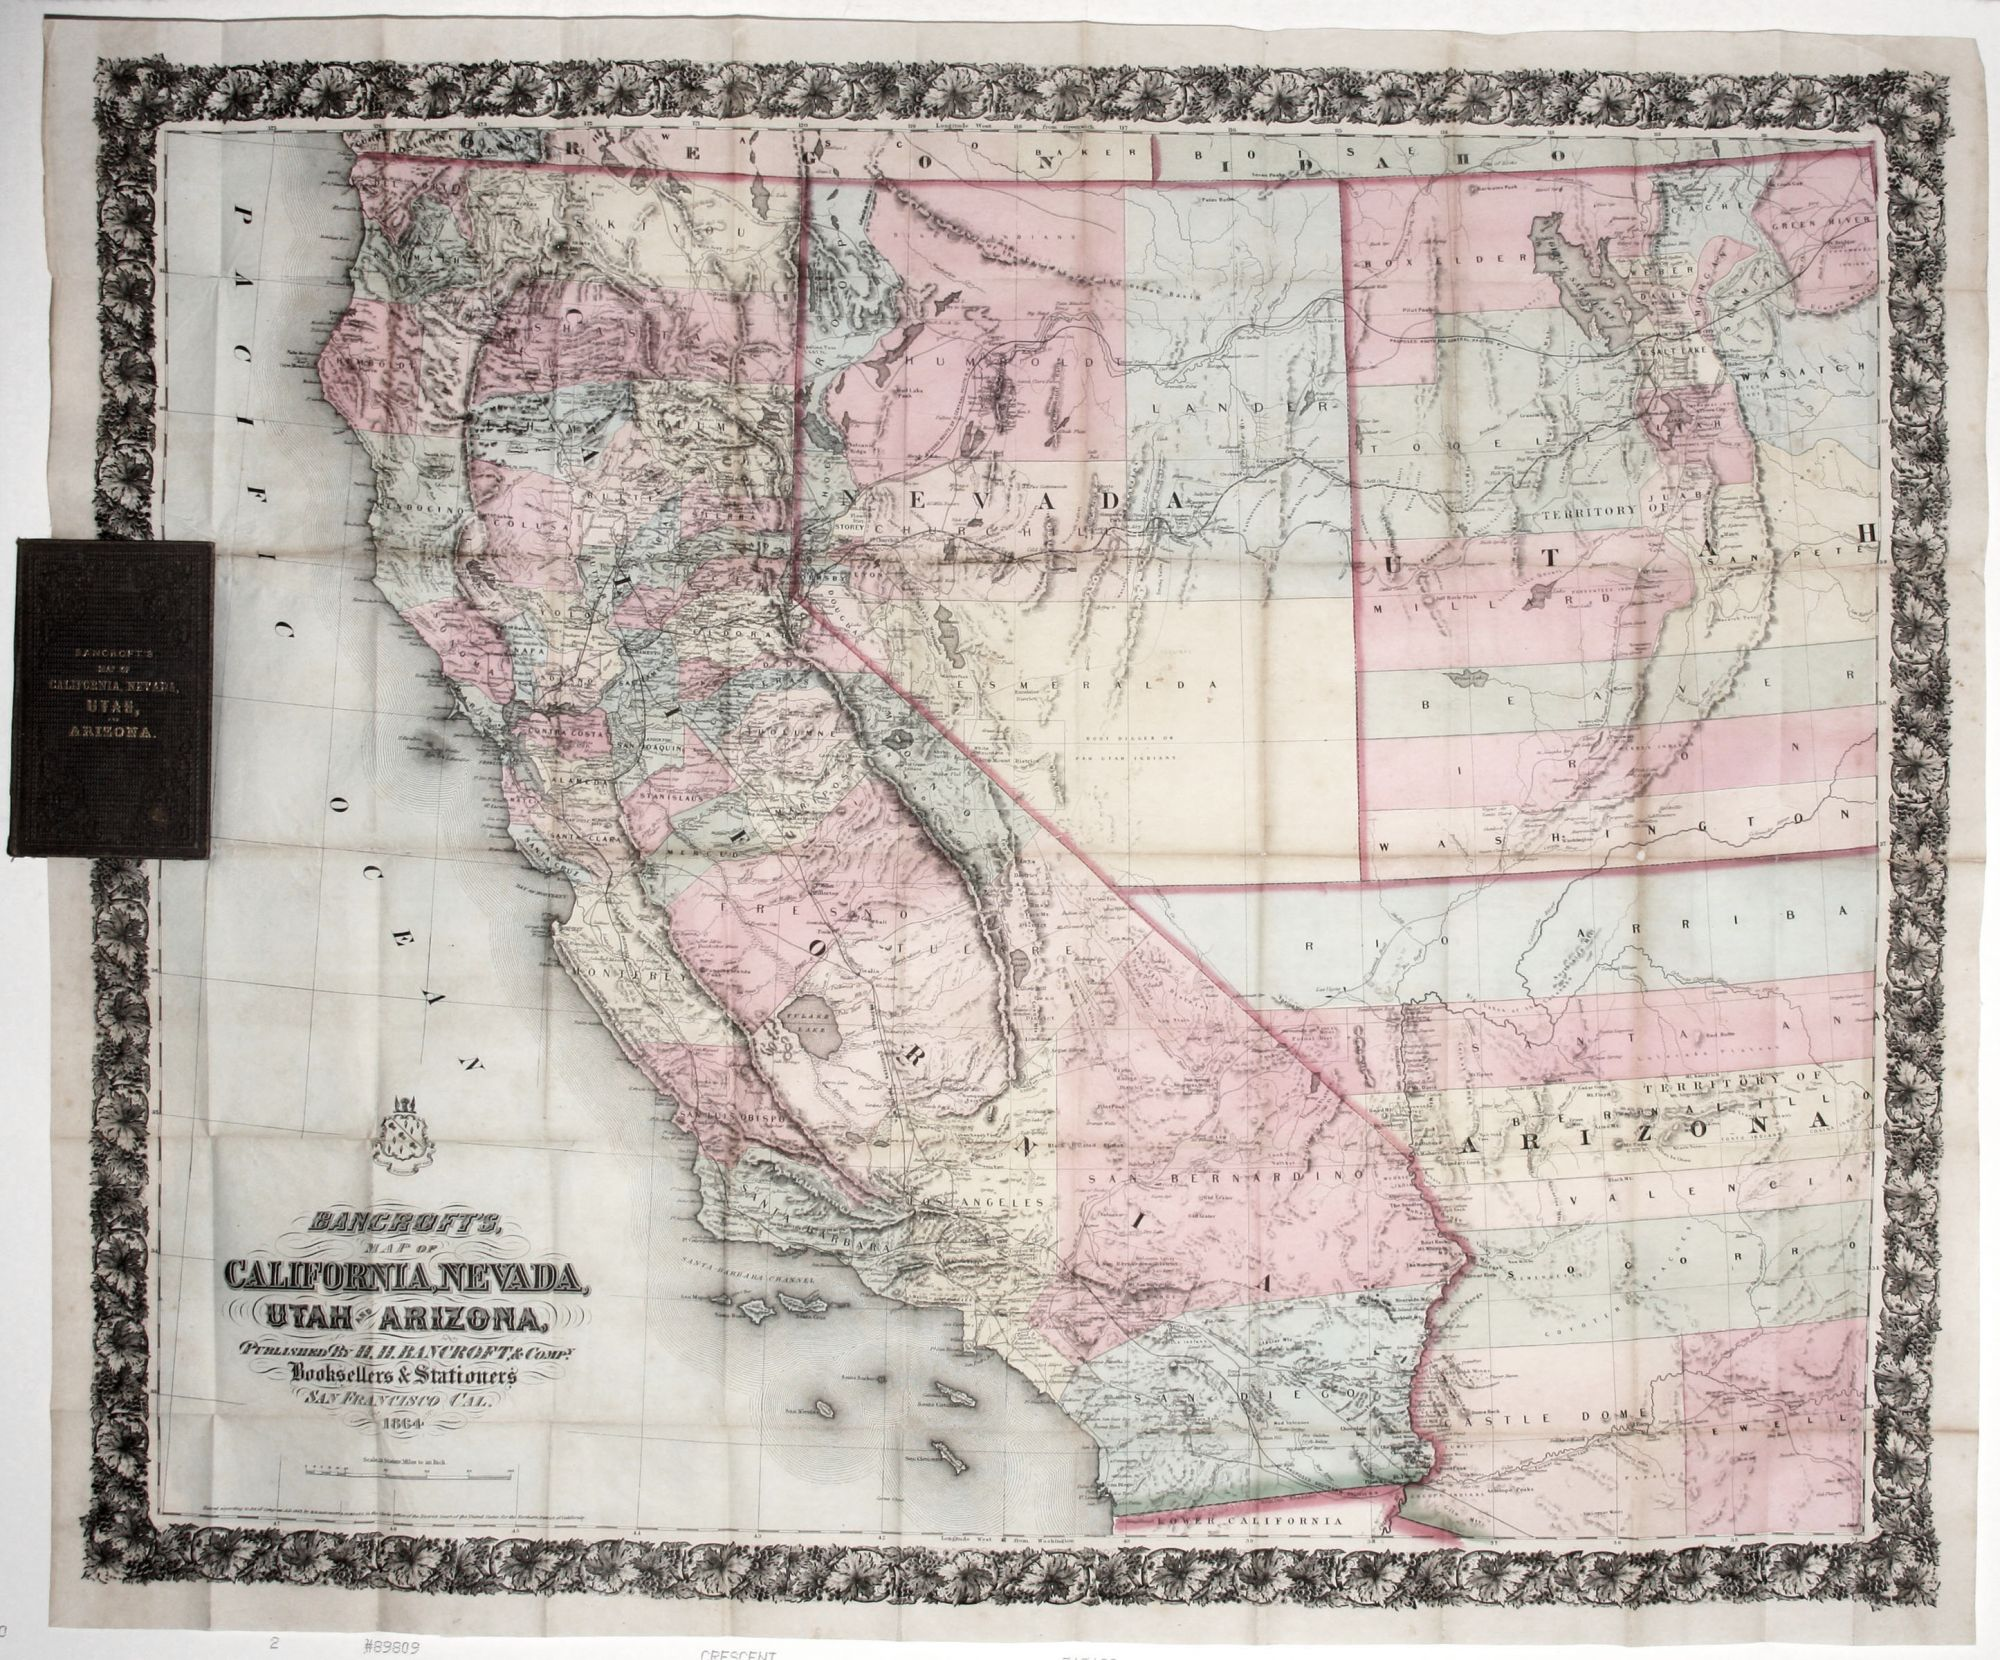 Map Of California And Arizona Together.Bancroft S Map Of California Nevada Utah And Arizona H H